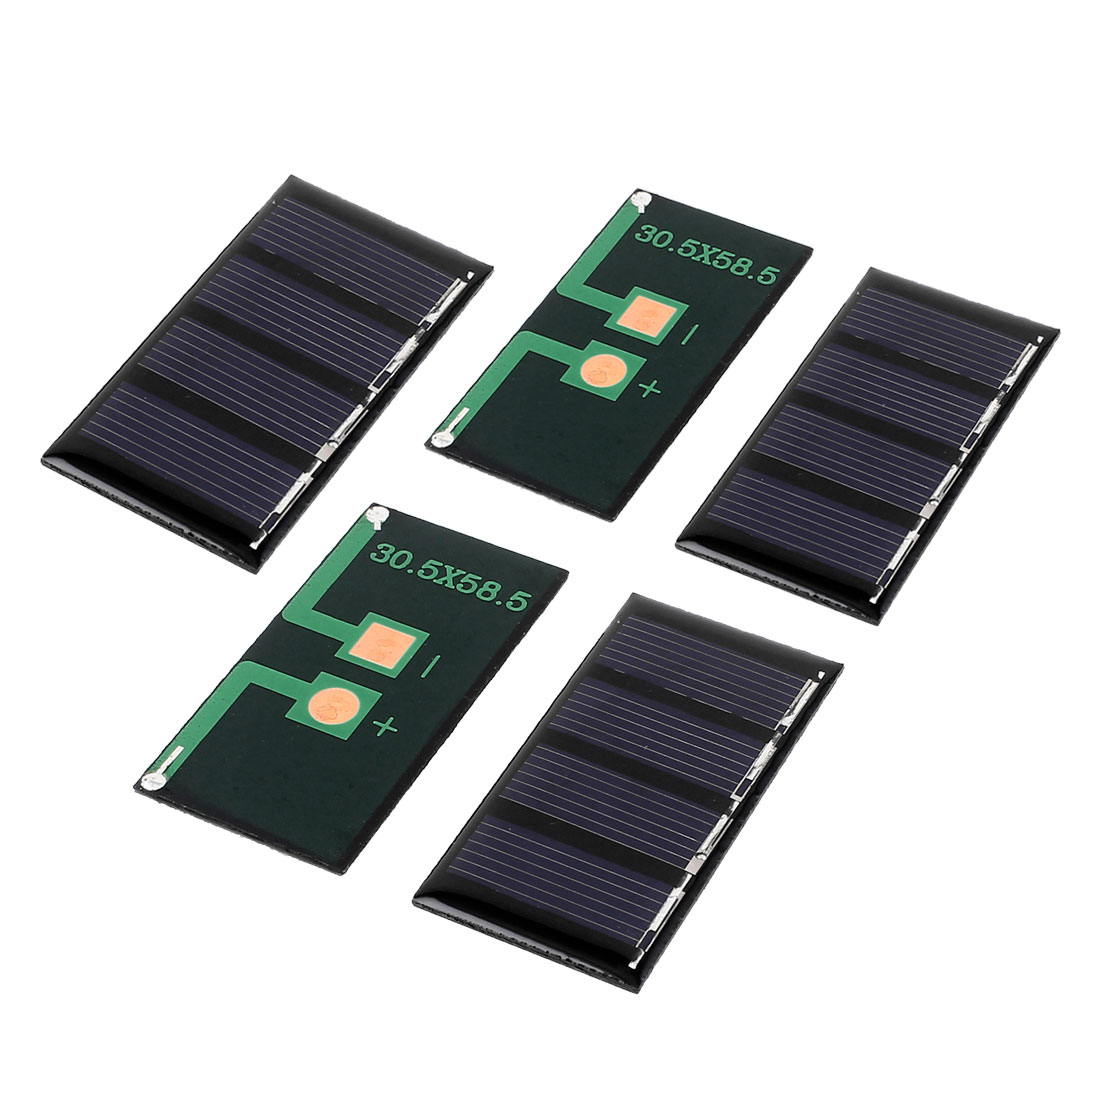 5 Pcs 2V 0.18W DIY Polycrystallinesilicon Solar Panel Power Cell Battery Charger 58.5mm x 30.5mm